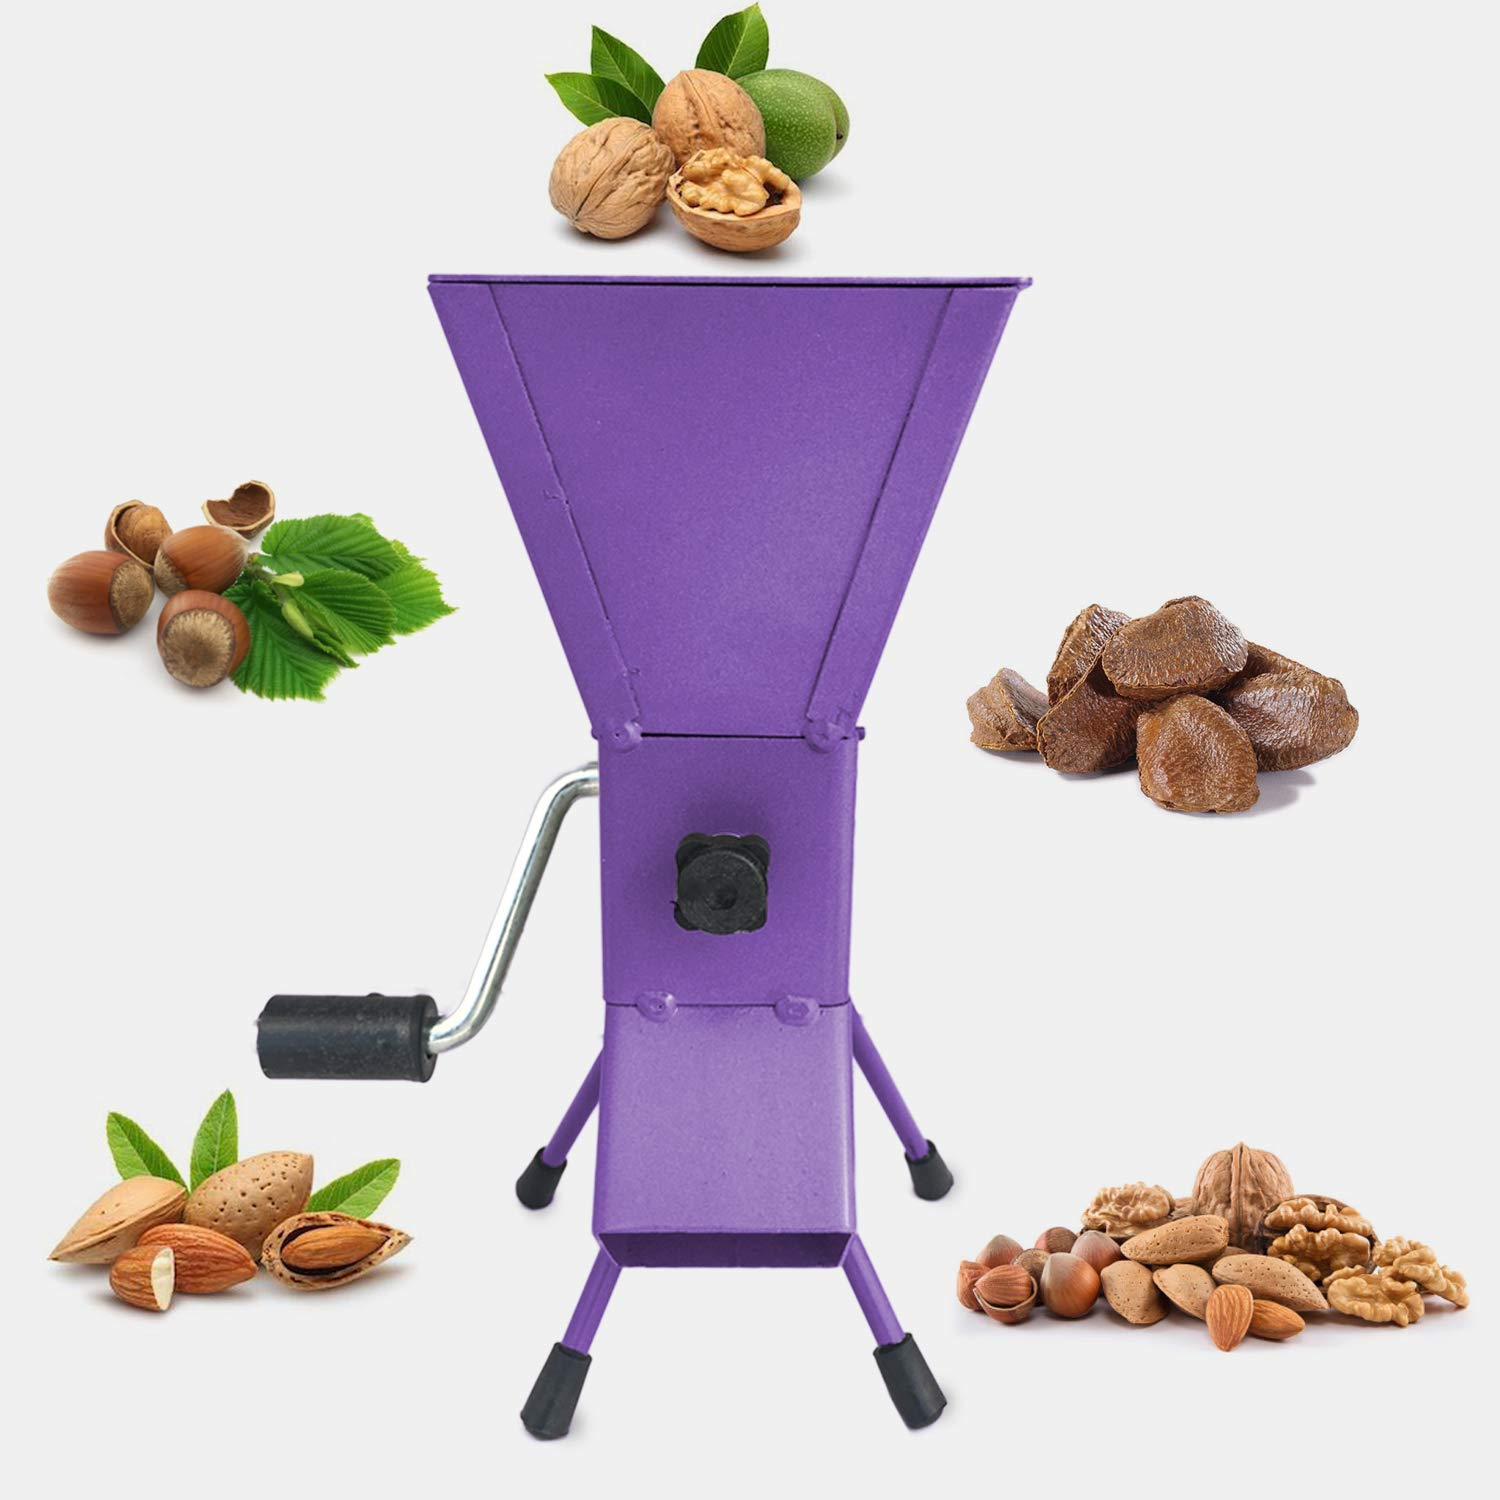 YARN STORY Hand Crank Nutcracker Tool for Pecans (Soft Shell), Almonds, Hazelnuts, Filbert Nuts, Brazil Nuts, Pistachios and English Walnuts. All Steel Nut Cracker Machine - Nutcracker Tool (Purple)